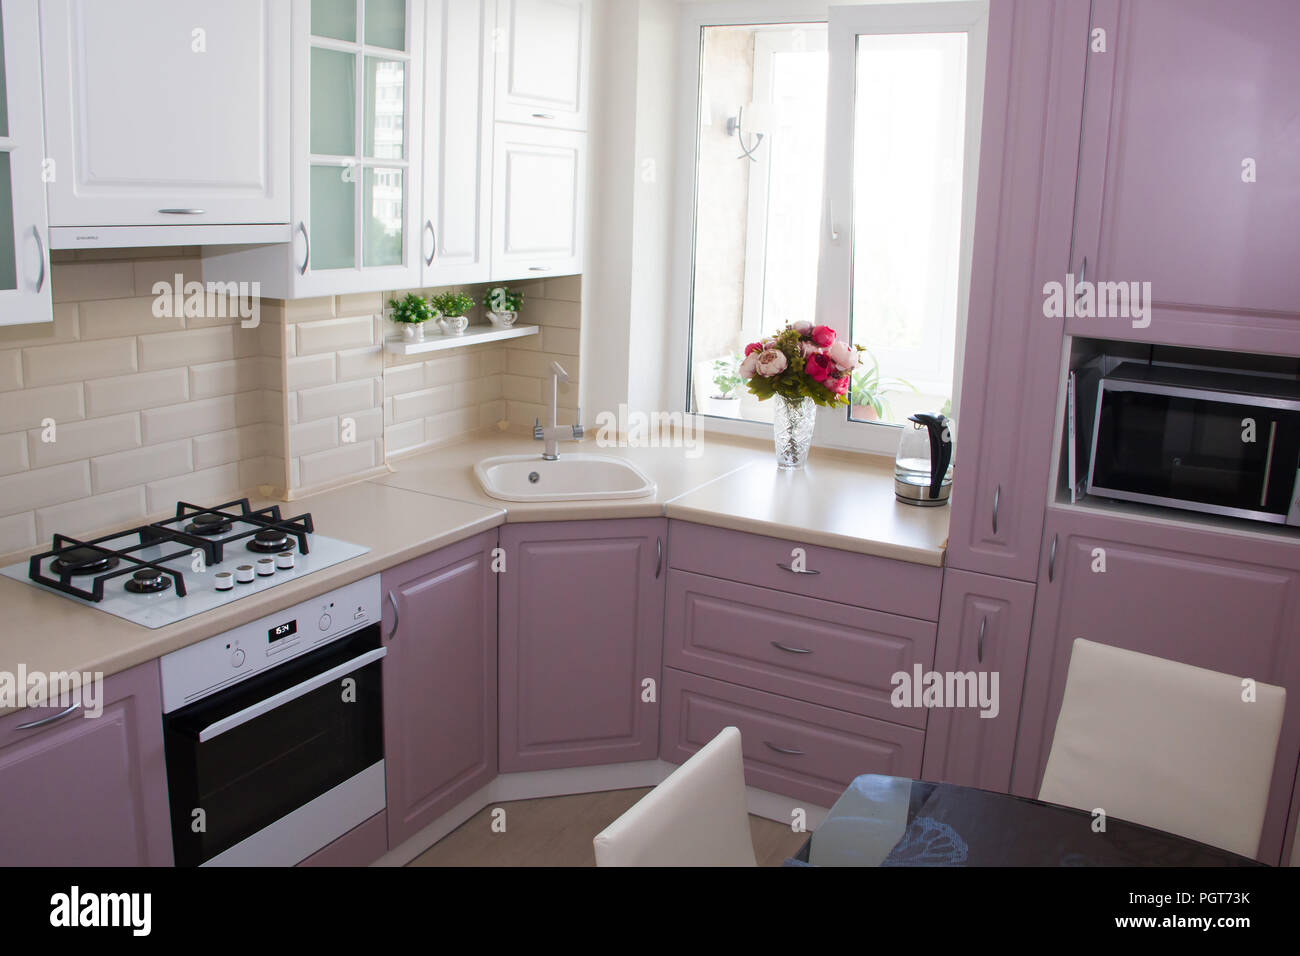 Large Light Pink Kitchen Interior Of A Pink Kitchen Wooden Kitchen Design Russia St Petersburg June 2018 Stock Photo Alamy